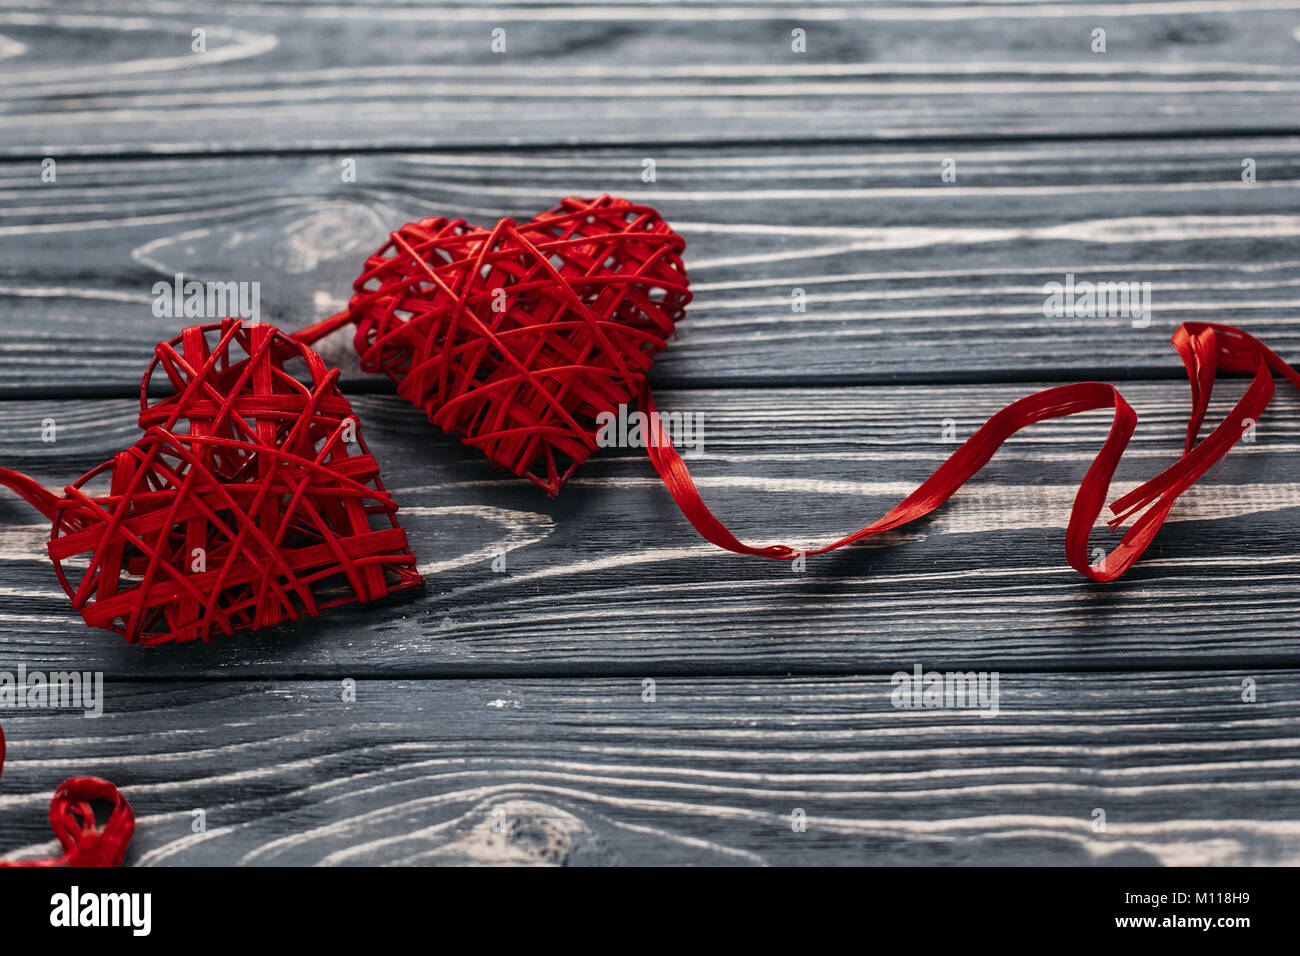 Stylish Two Red Hearts Ribbons On Black Rustic Wooden Background Happy Valentines Day Concept